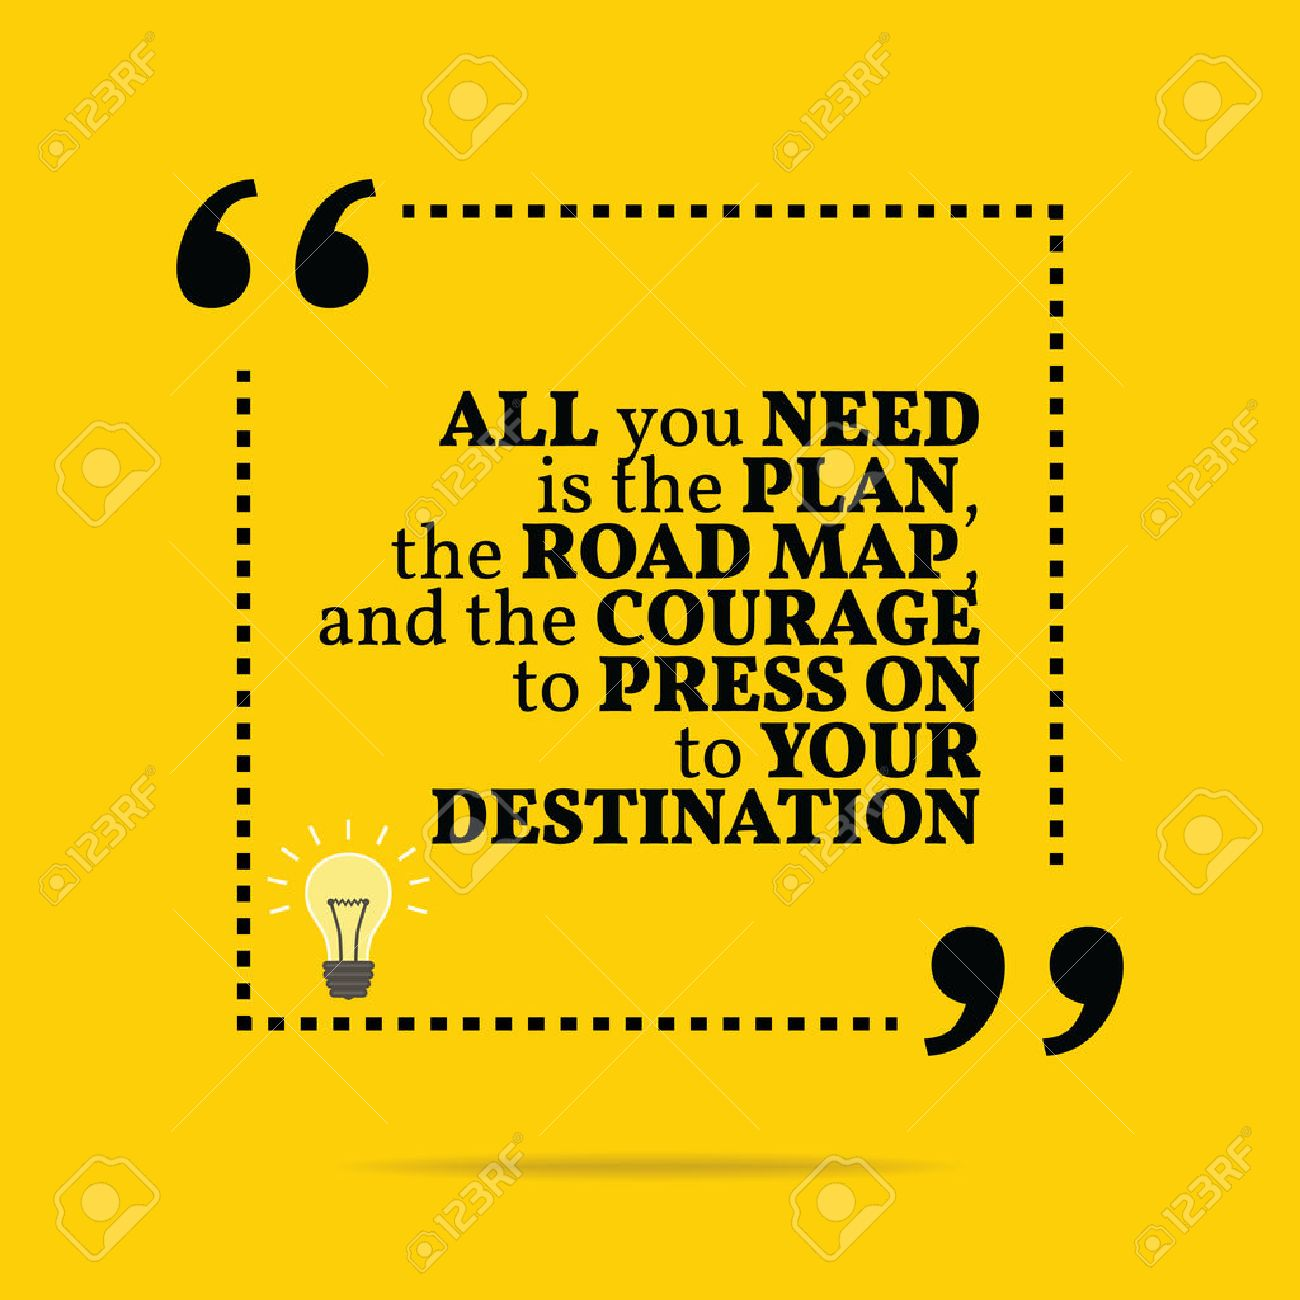 Inspirational motivational quote. All you need is the plan, the.. on i need history, bank of america map, us postal code map, i need an id, i need camera, i need address, i need hours, i need sunscreen, i need directions, i need water, i need fire, i need phone numbers, i need contacts, i need an essay, i need an umbrella, i need some money, i need lunch, i need text, i need an eraser, i need transportation,